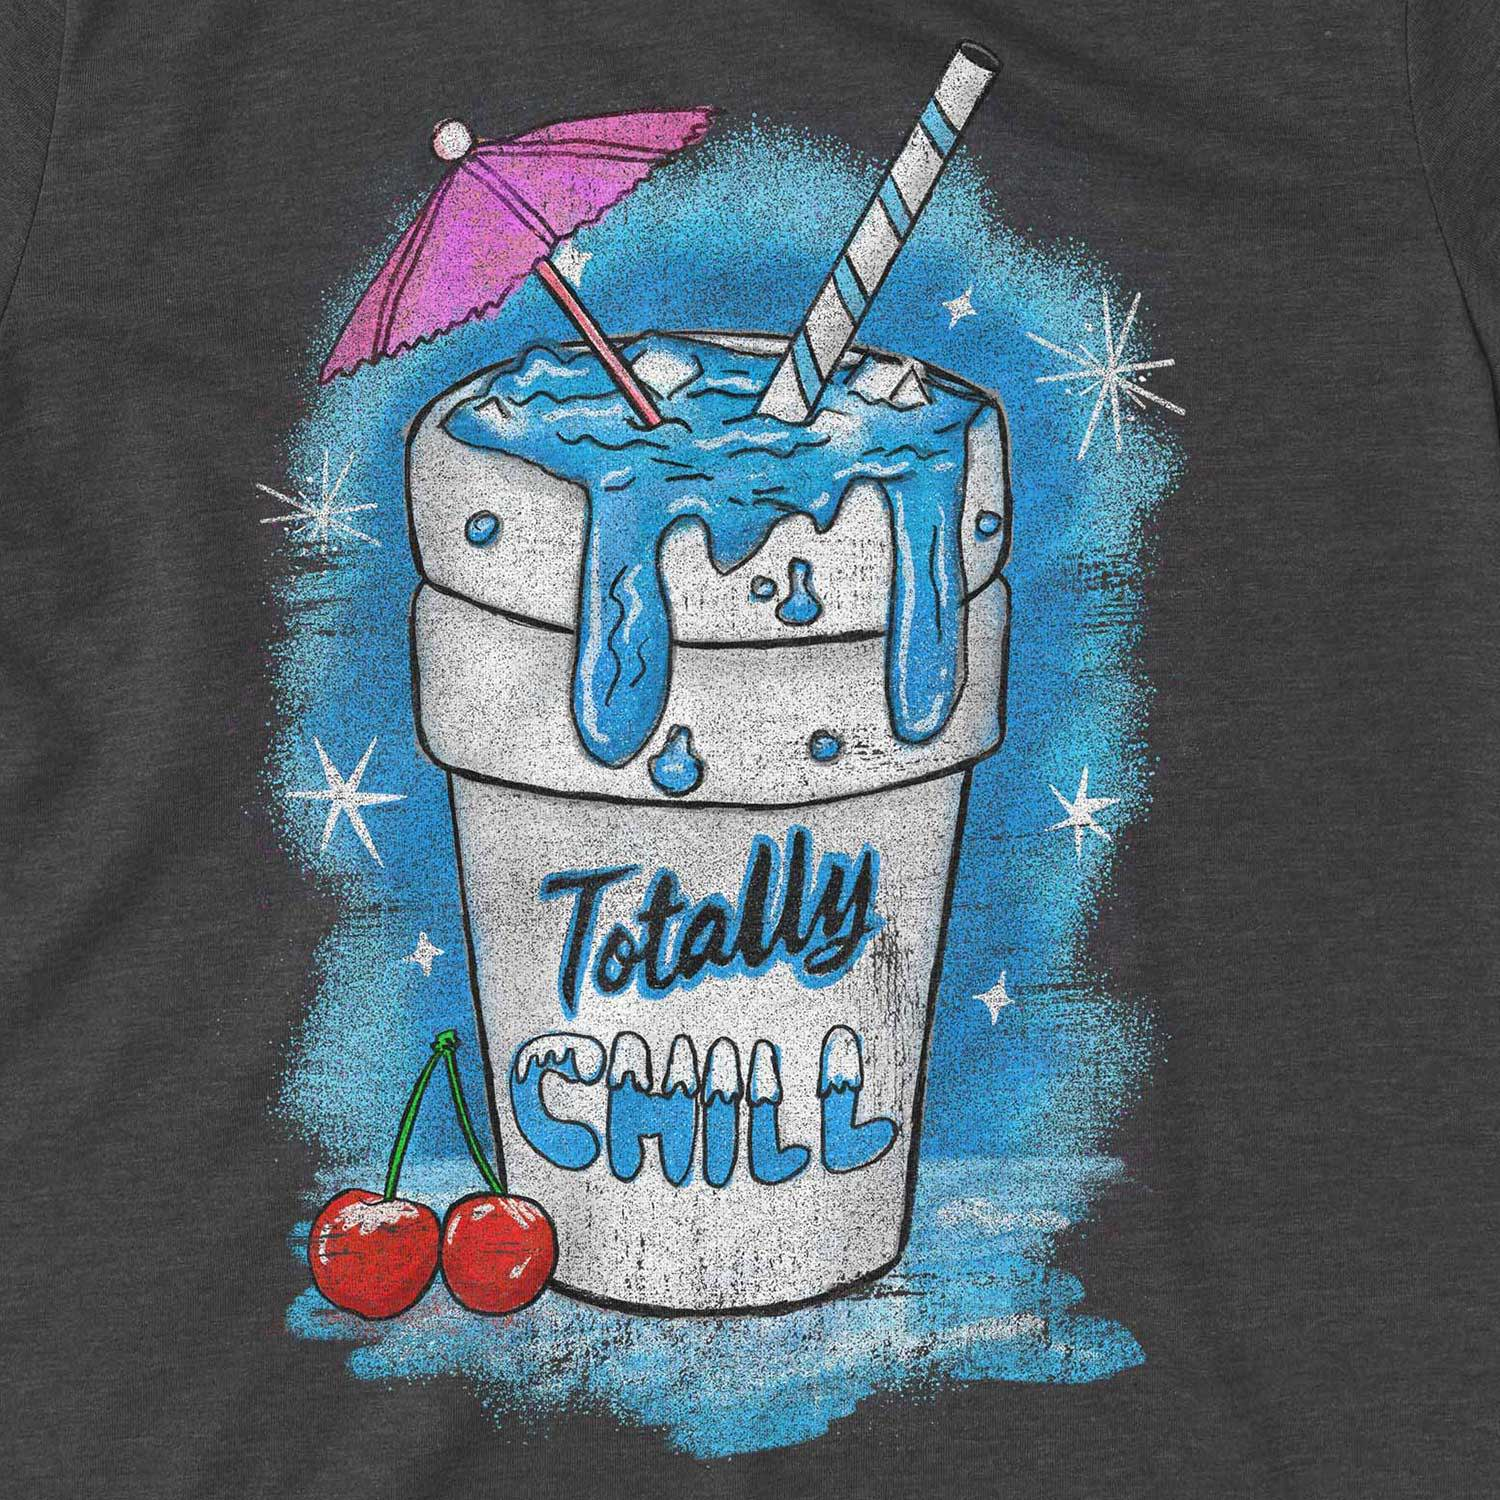 Totally Chill Retro Inspired Unisex Graphic T Shirt